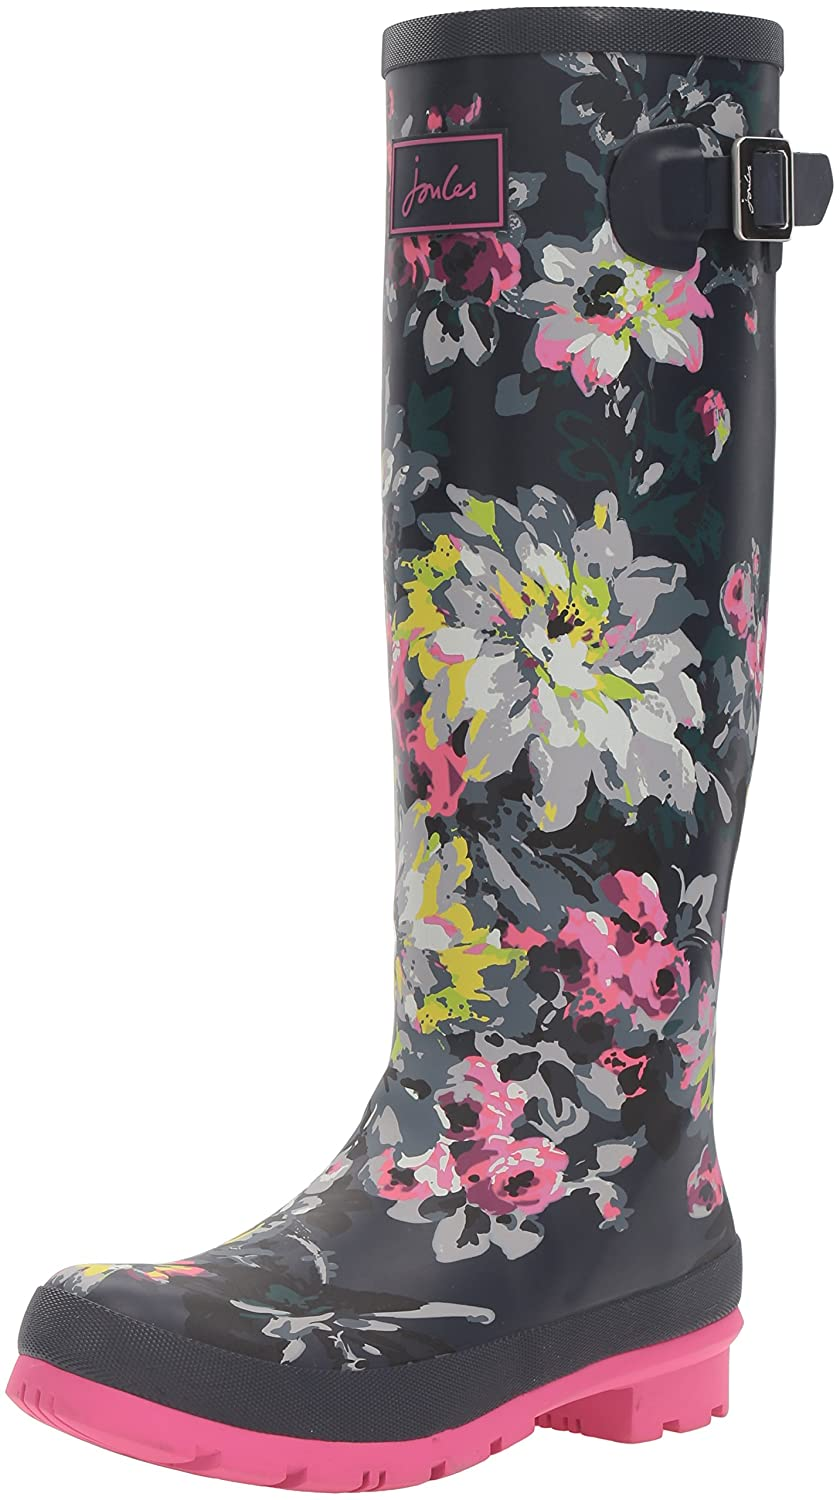 Joules Women's Welly Print Rain Boot B01F00CTT4 5 B(M) US|French Navy/Floral